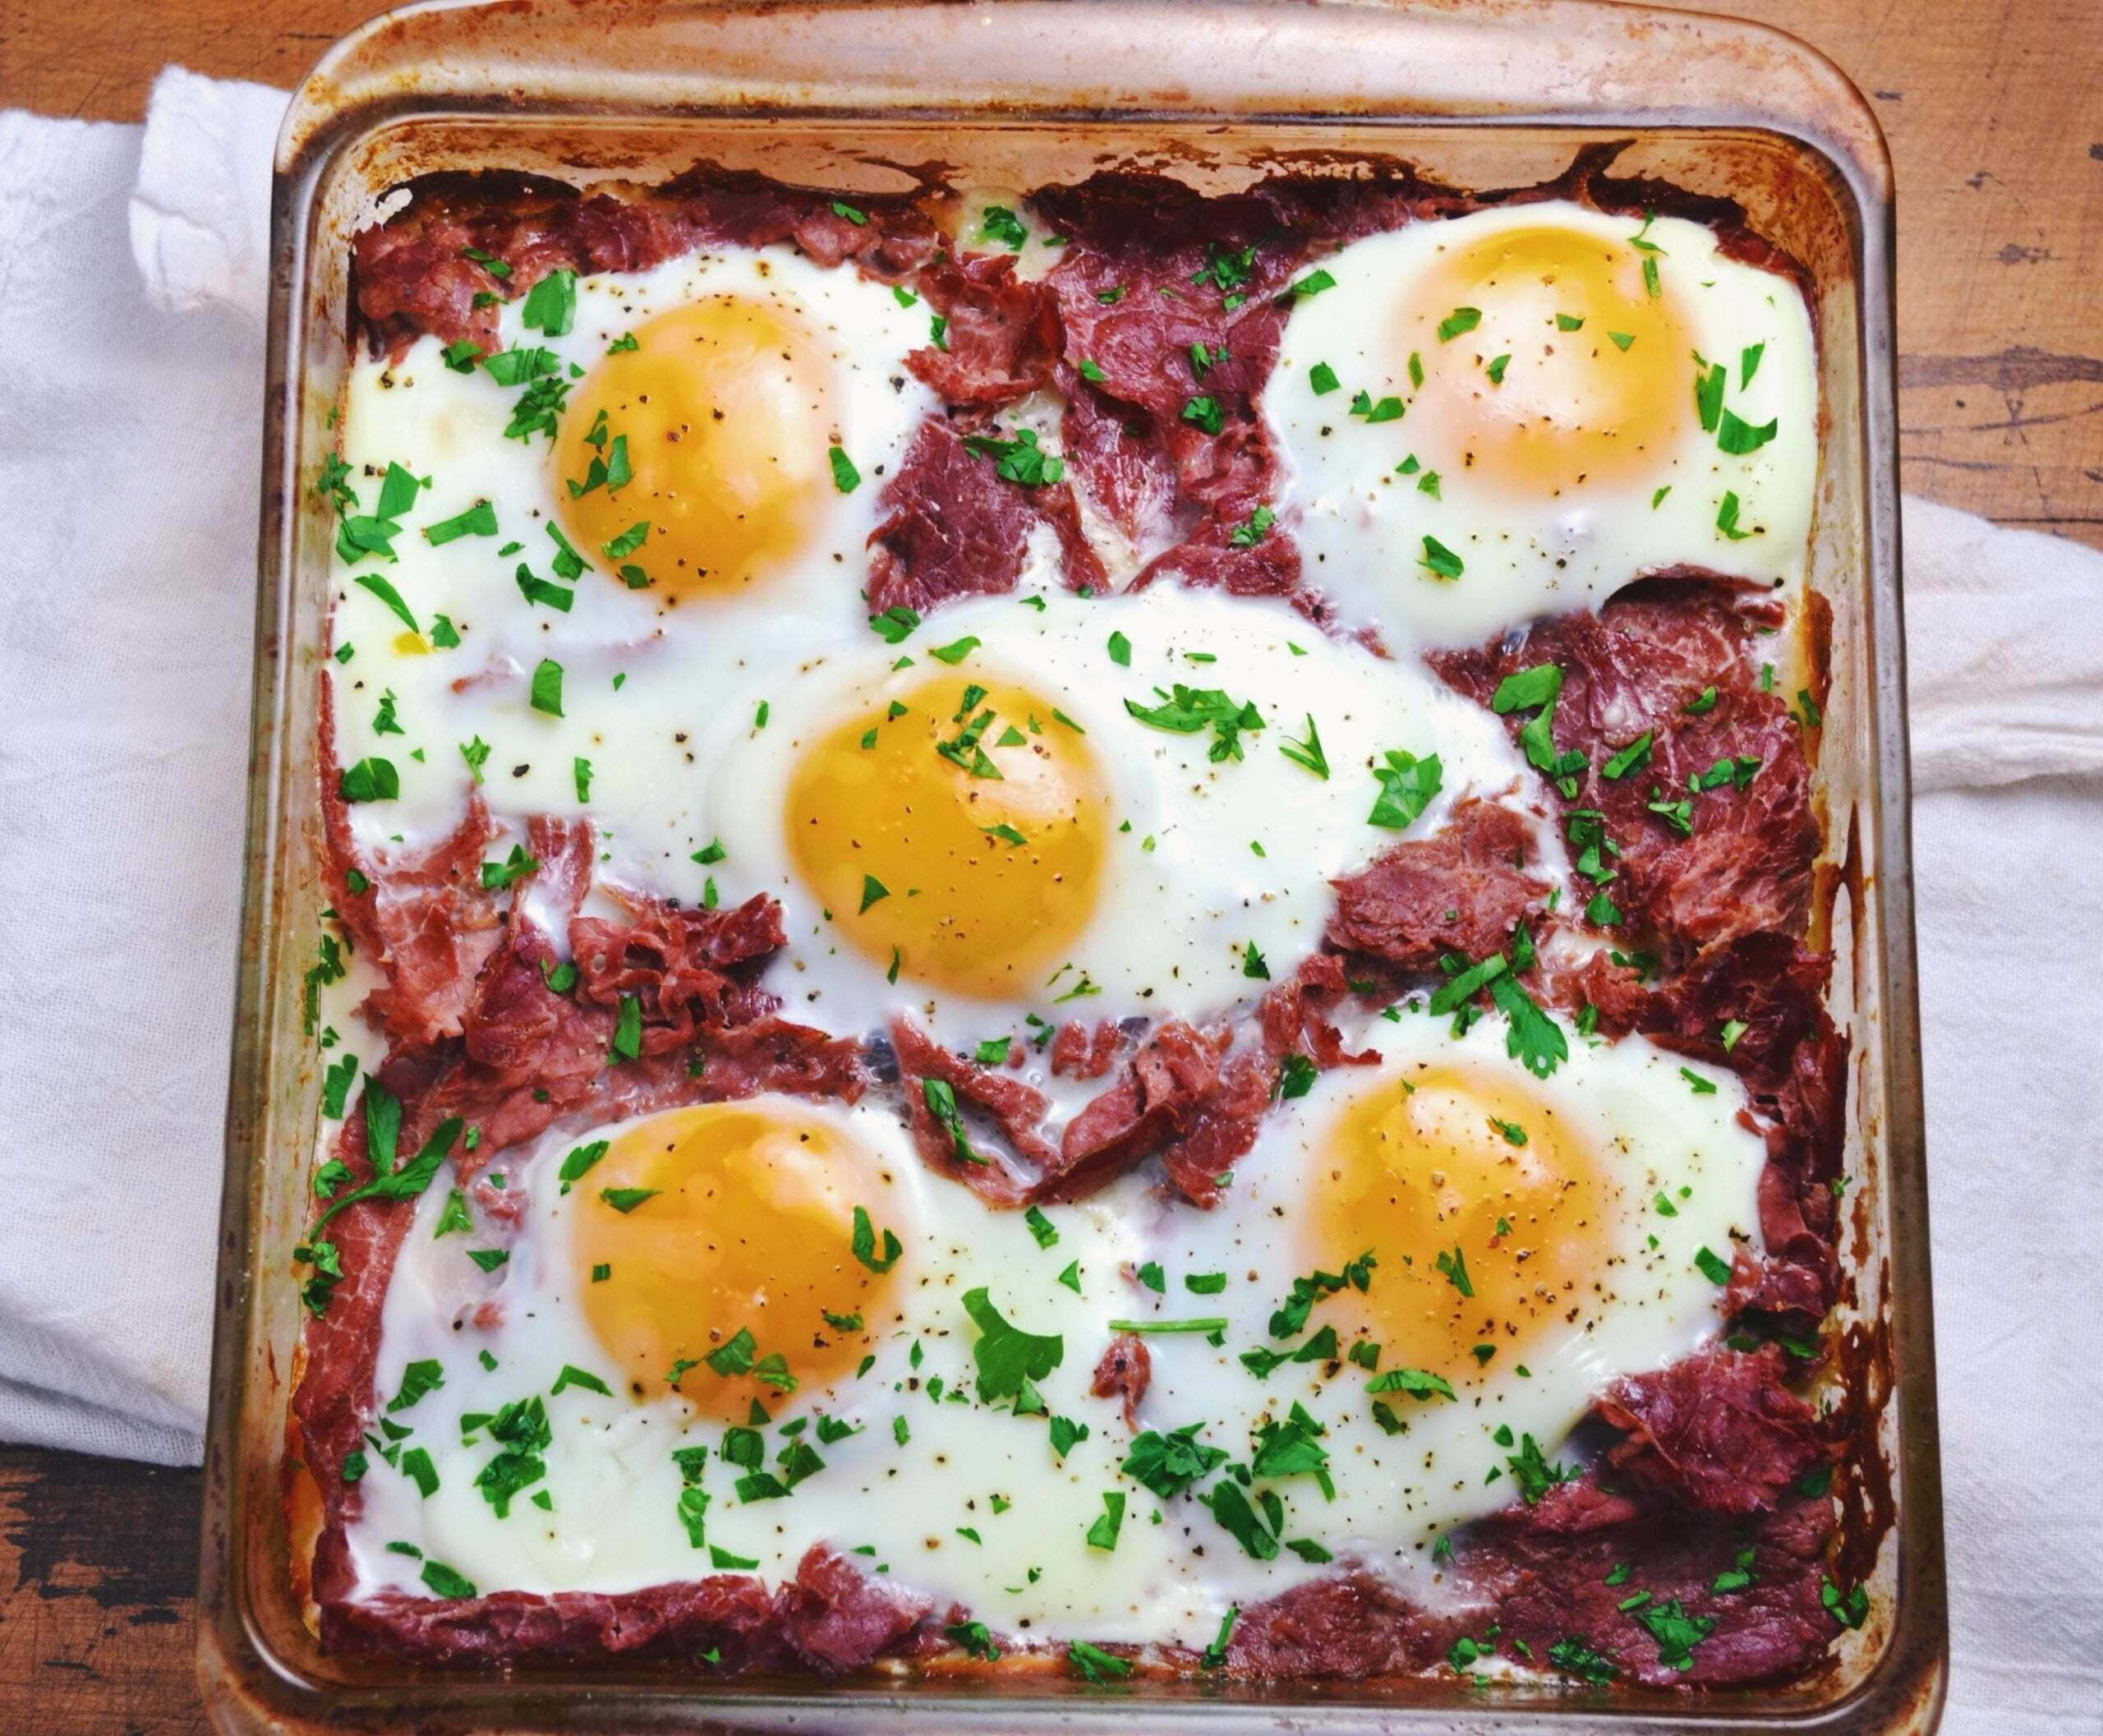 Corned Beef and Potato Breakfast Casserole